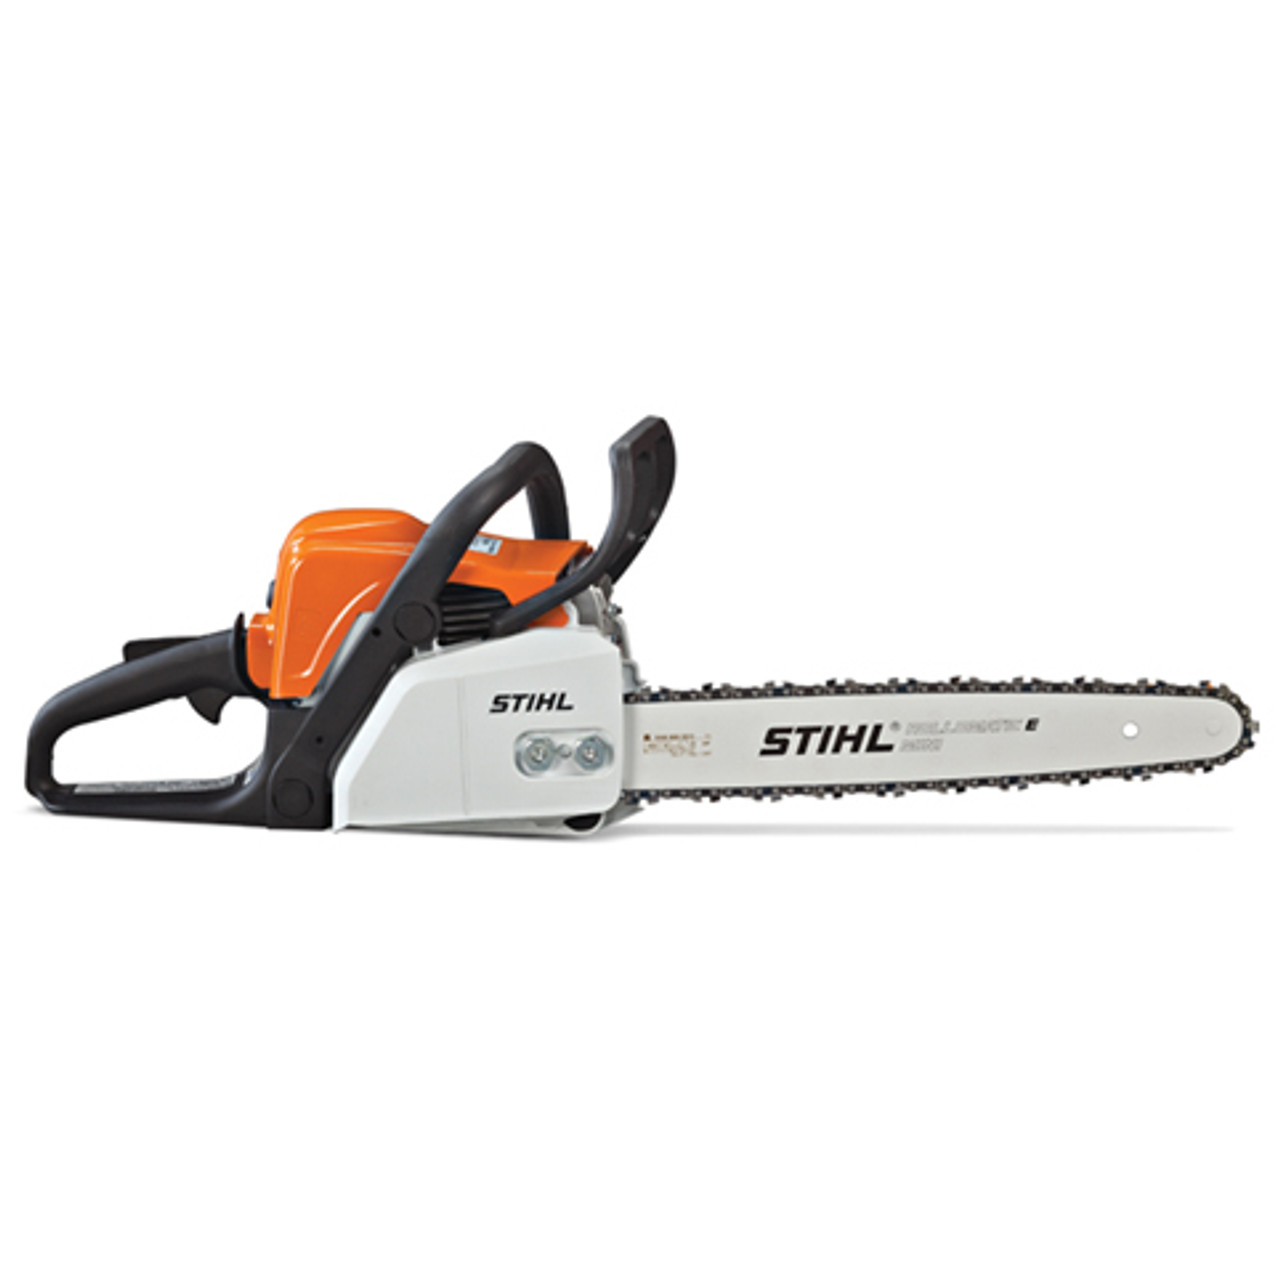 "STIHL MS 170 16 30.1cc Chainsaw w/ 16"" Bar Image"